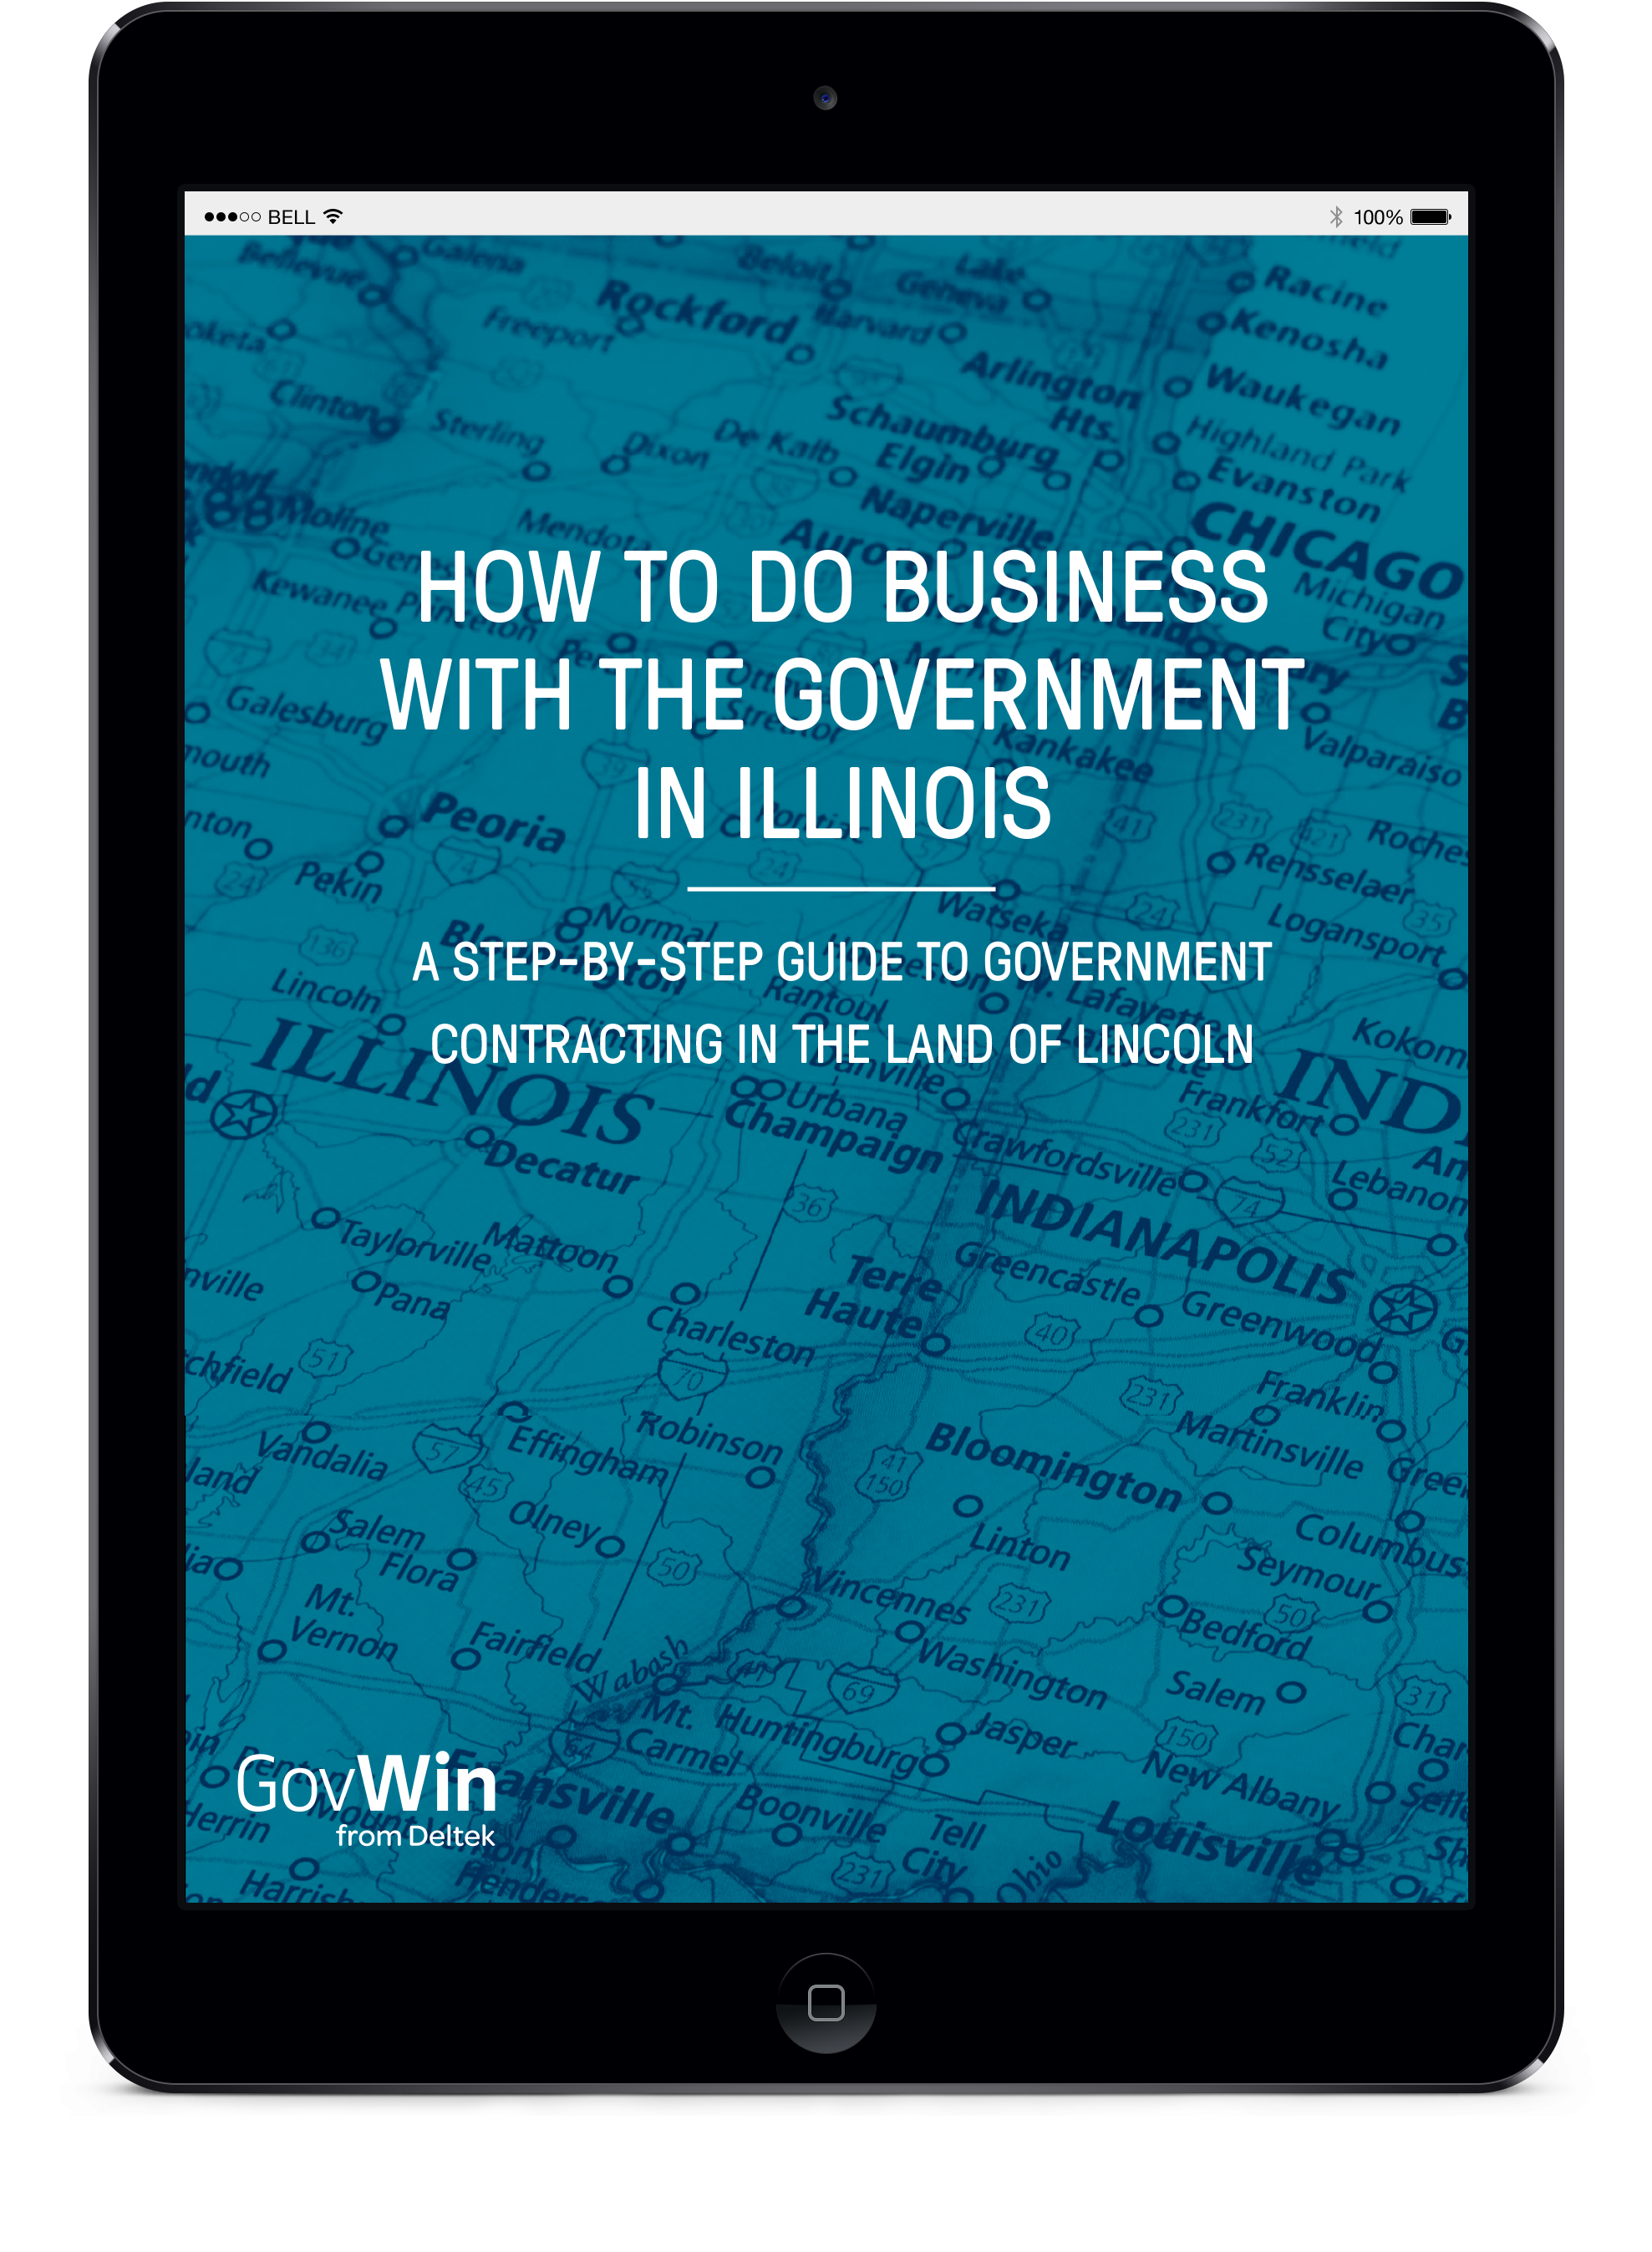 How to do Business with the Government in Illinois